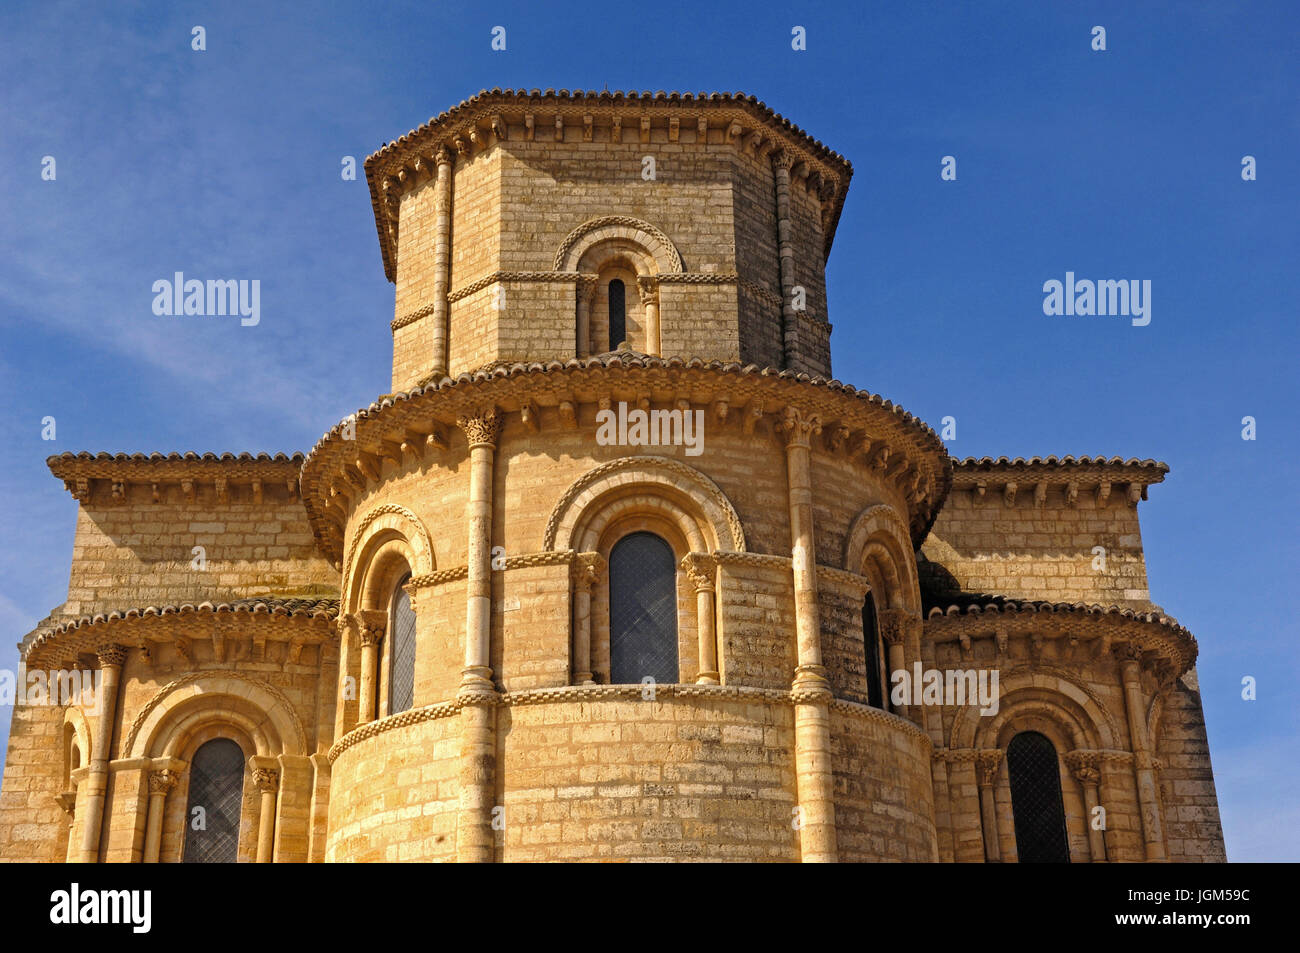 apse of the church San Martin de Tours, Fromista, Palencia, Spain - Stock Image